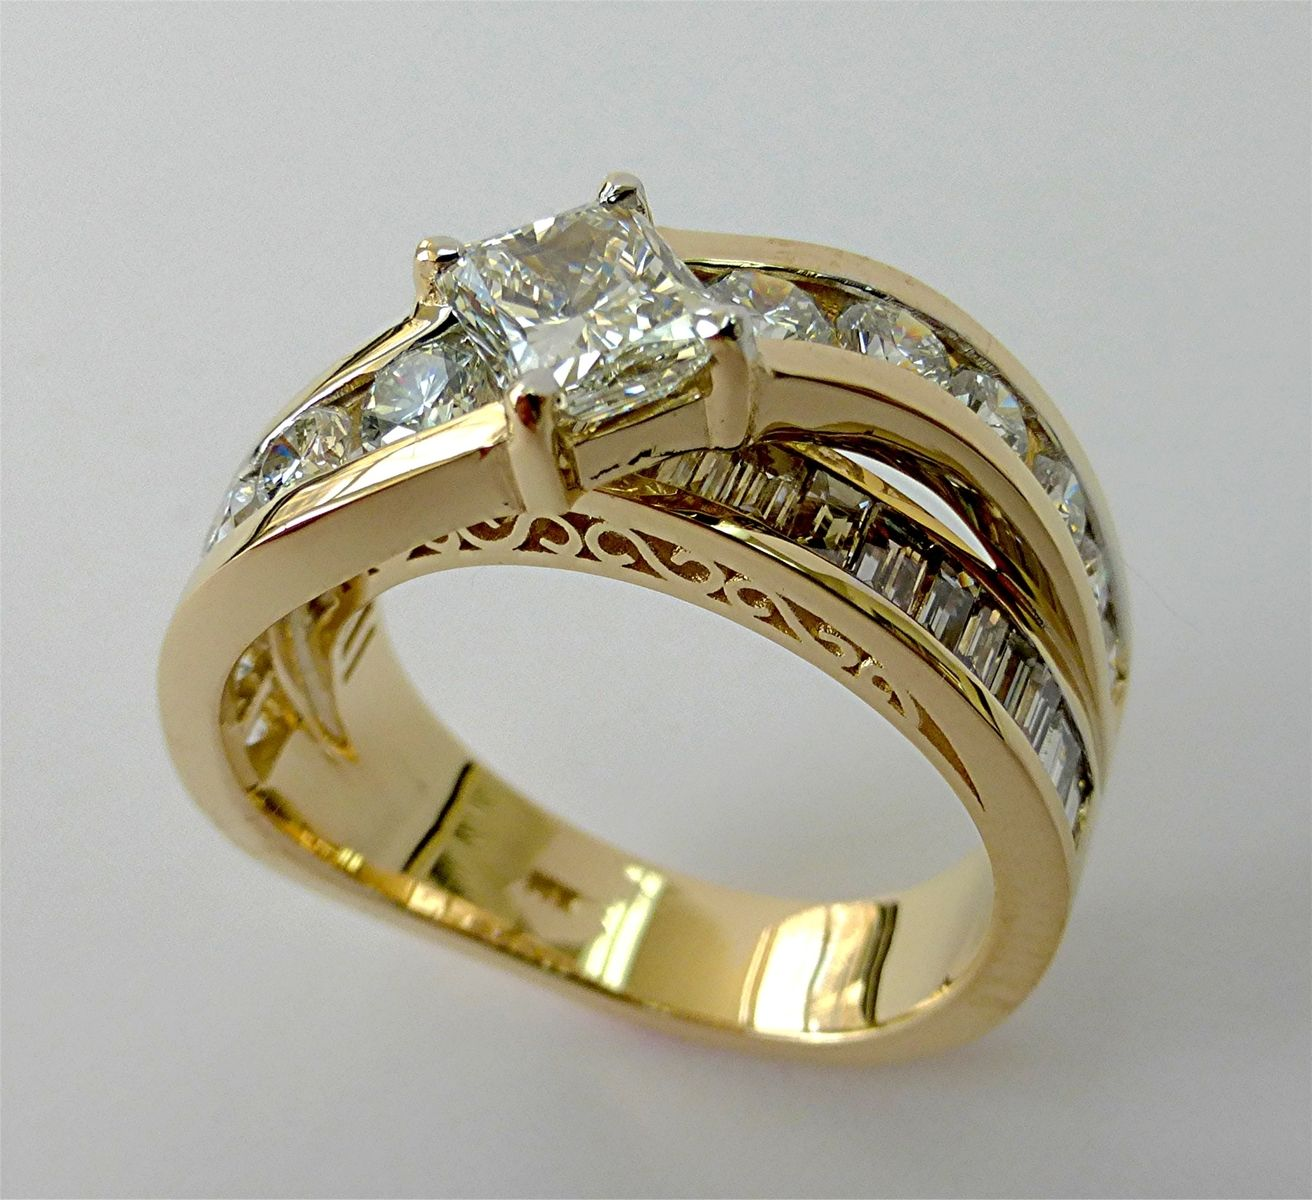 Hand made redesign of an old ring by limpid jewelry inc for Redesign wedding ring